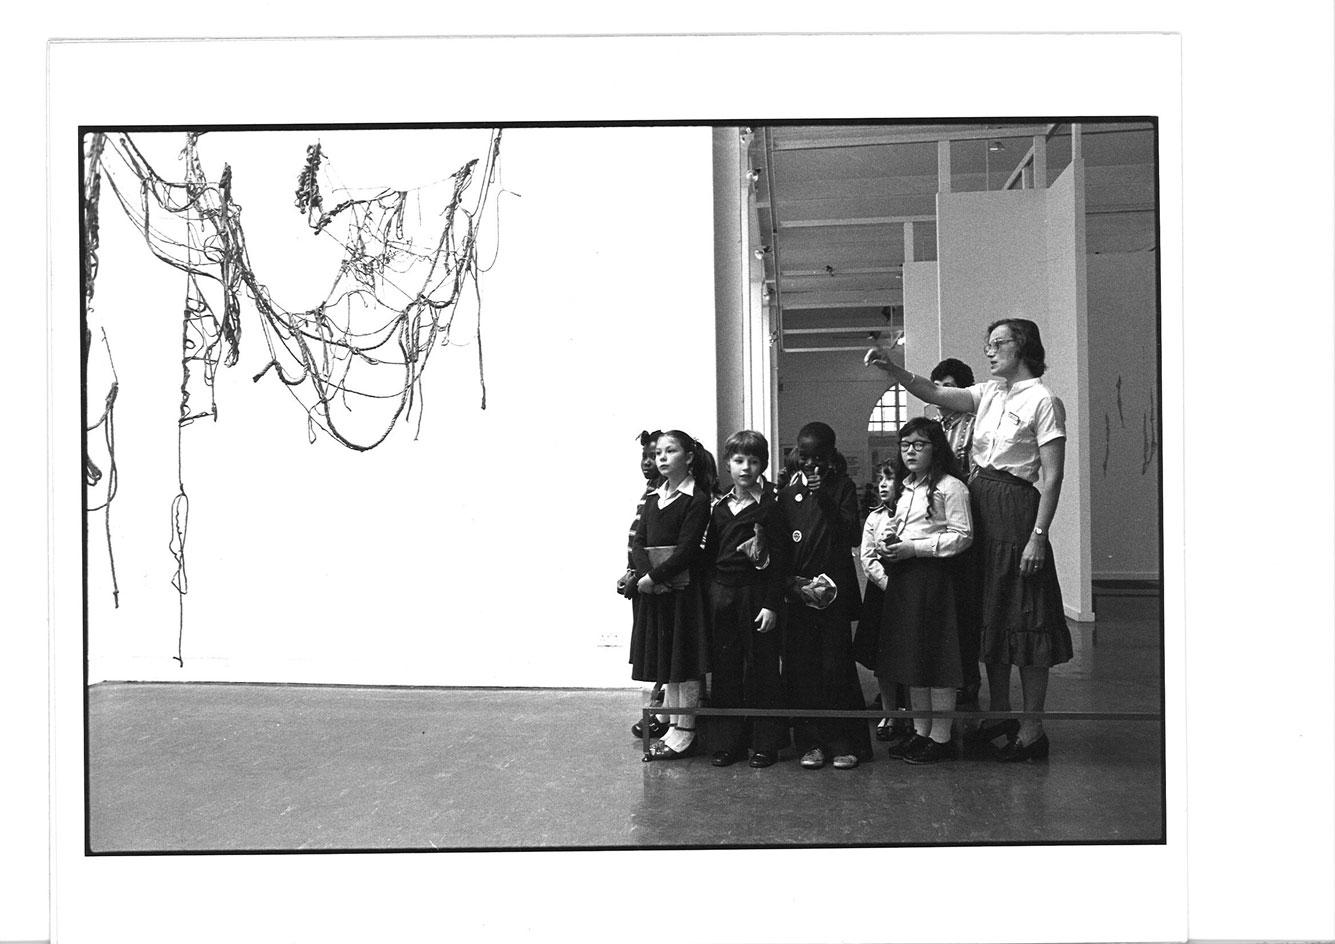 School groups at Whitechapel Gallery during the Eva Hesse exhibition, 4 May -17 June 1979